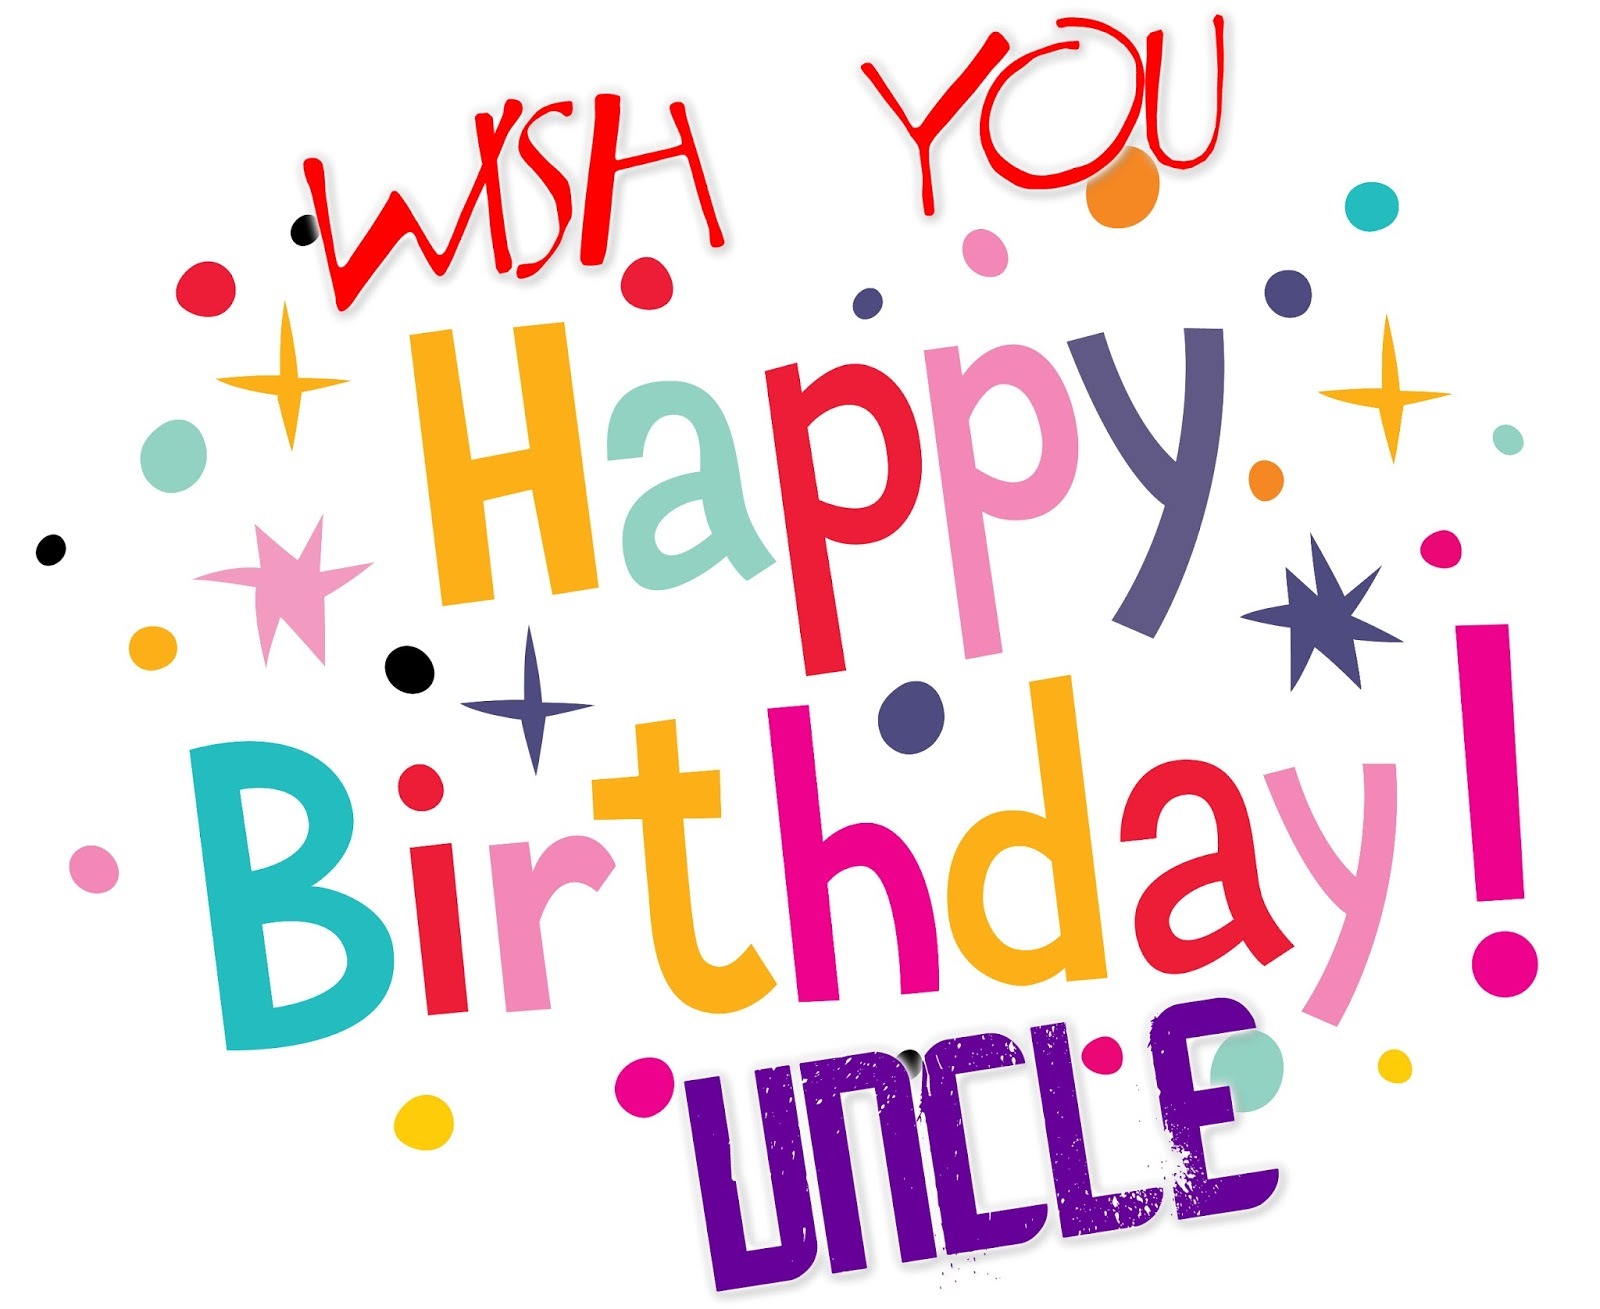 Beautiful images of happy birthday wishes for uncle romantic beautiful images of happy birthday wishes for uncle kristyandbryce Choice Image